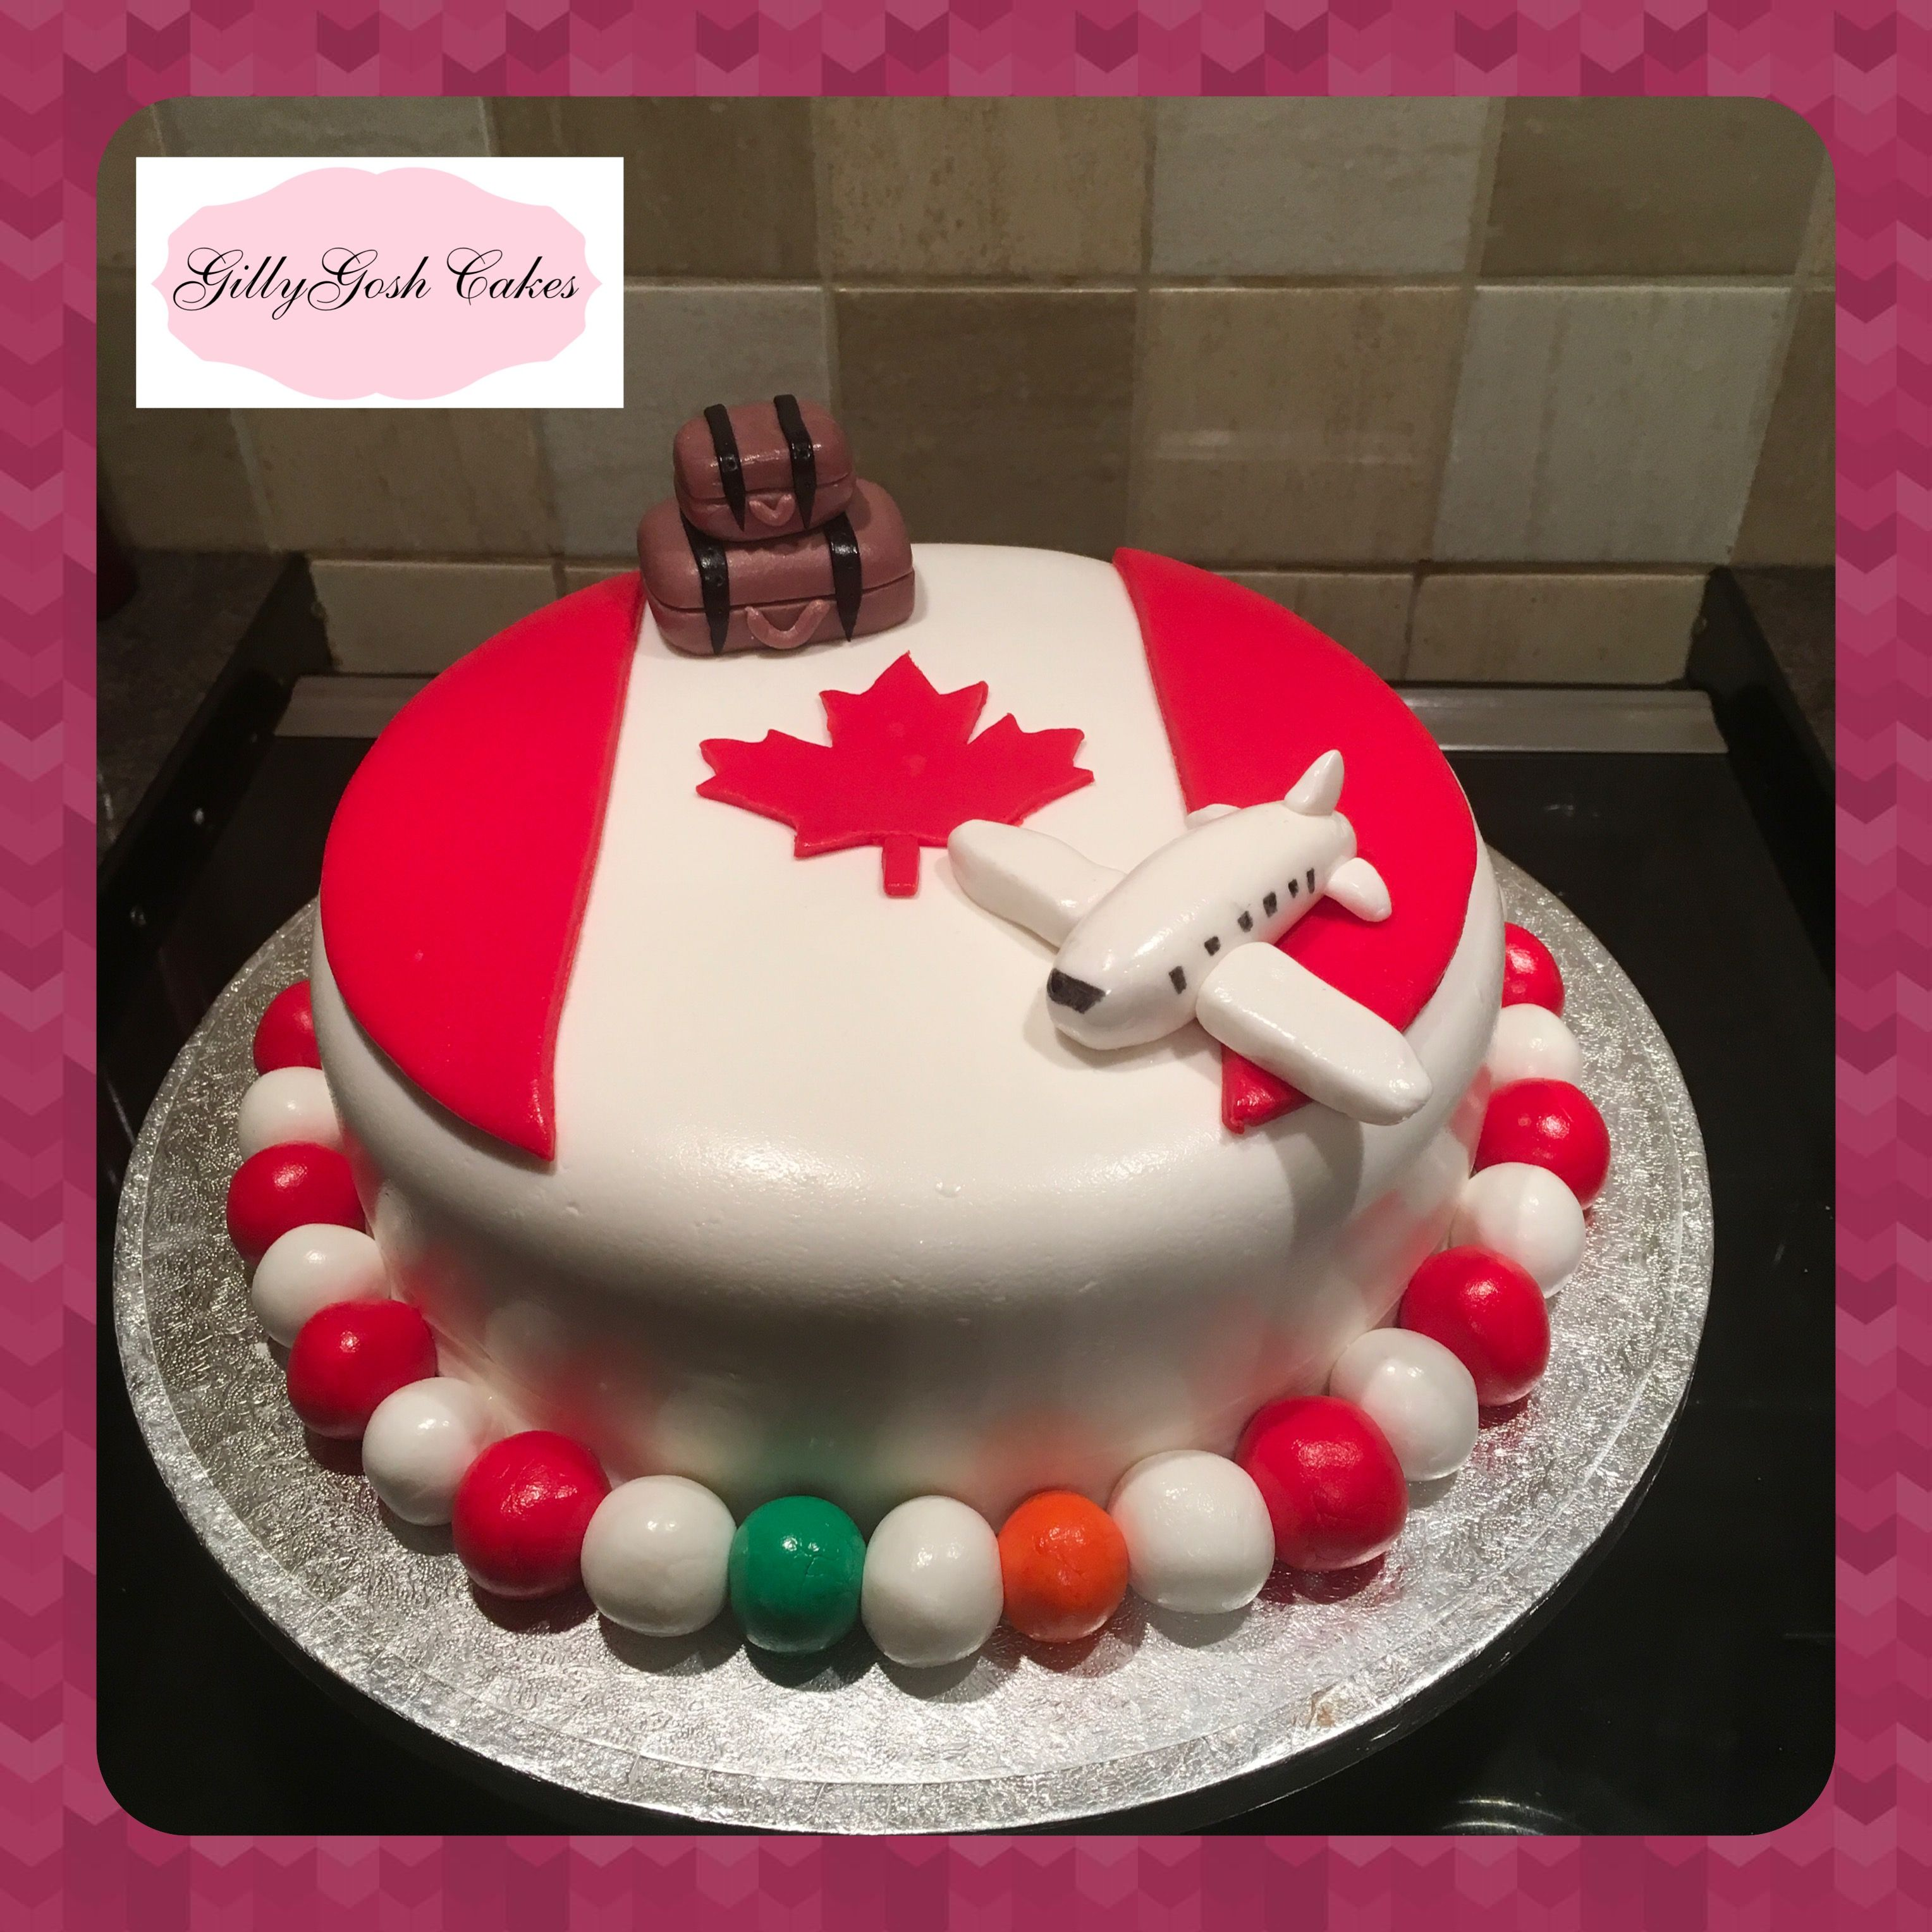 Fabulous Canada Bon Voyage Cake Bon Voyage Cake Party Cakes Cake Funny Birthday Cards Online Chimdamsfinfo